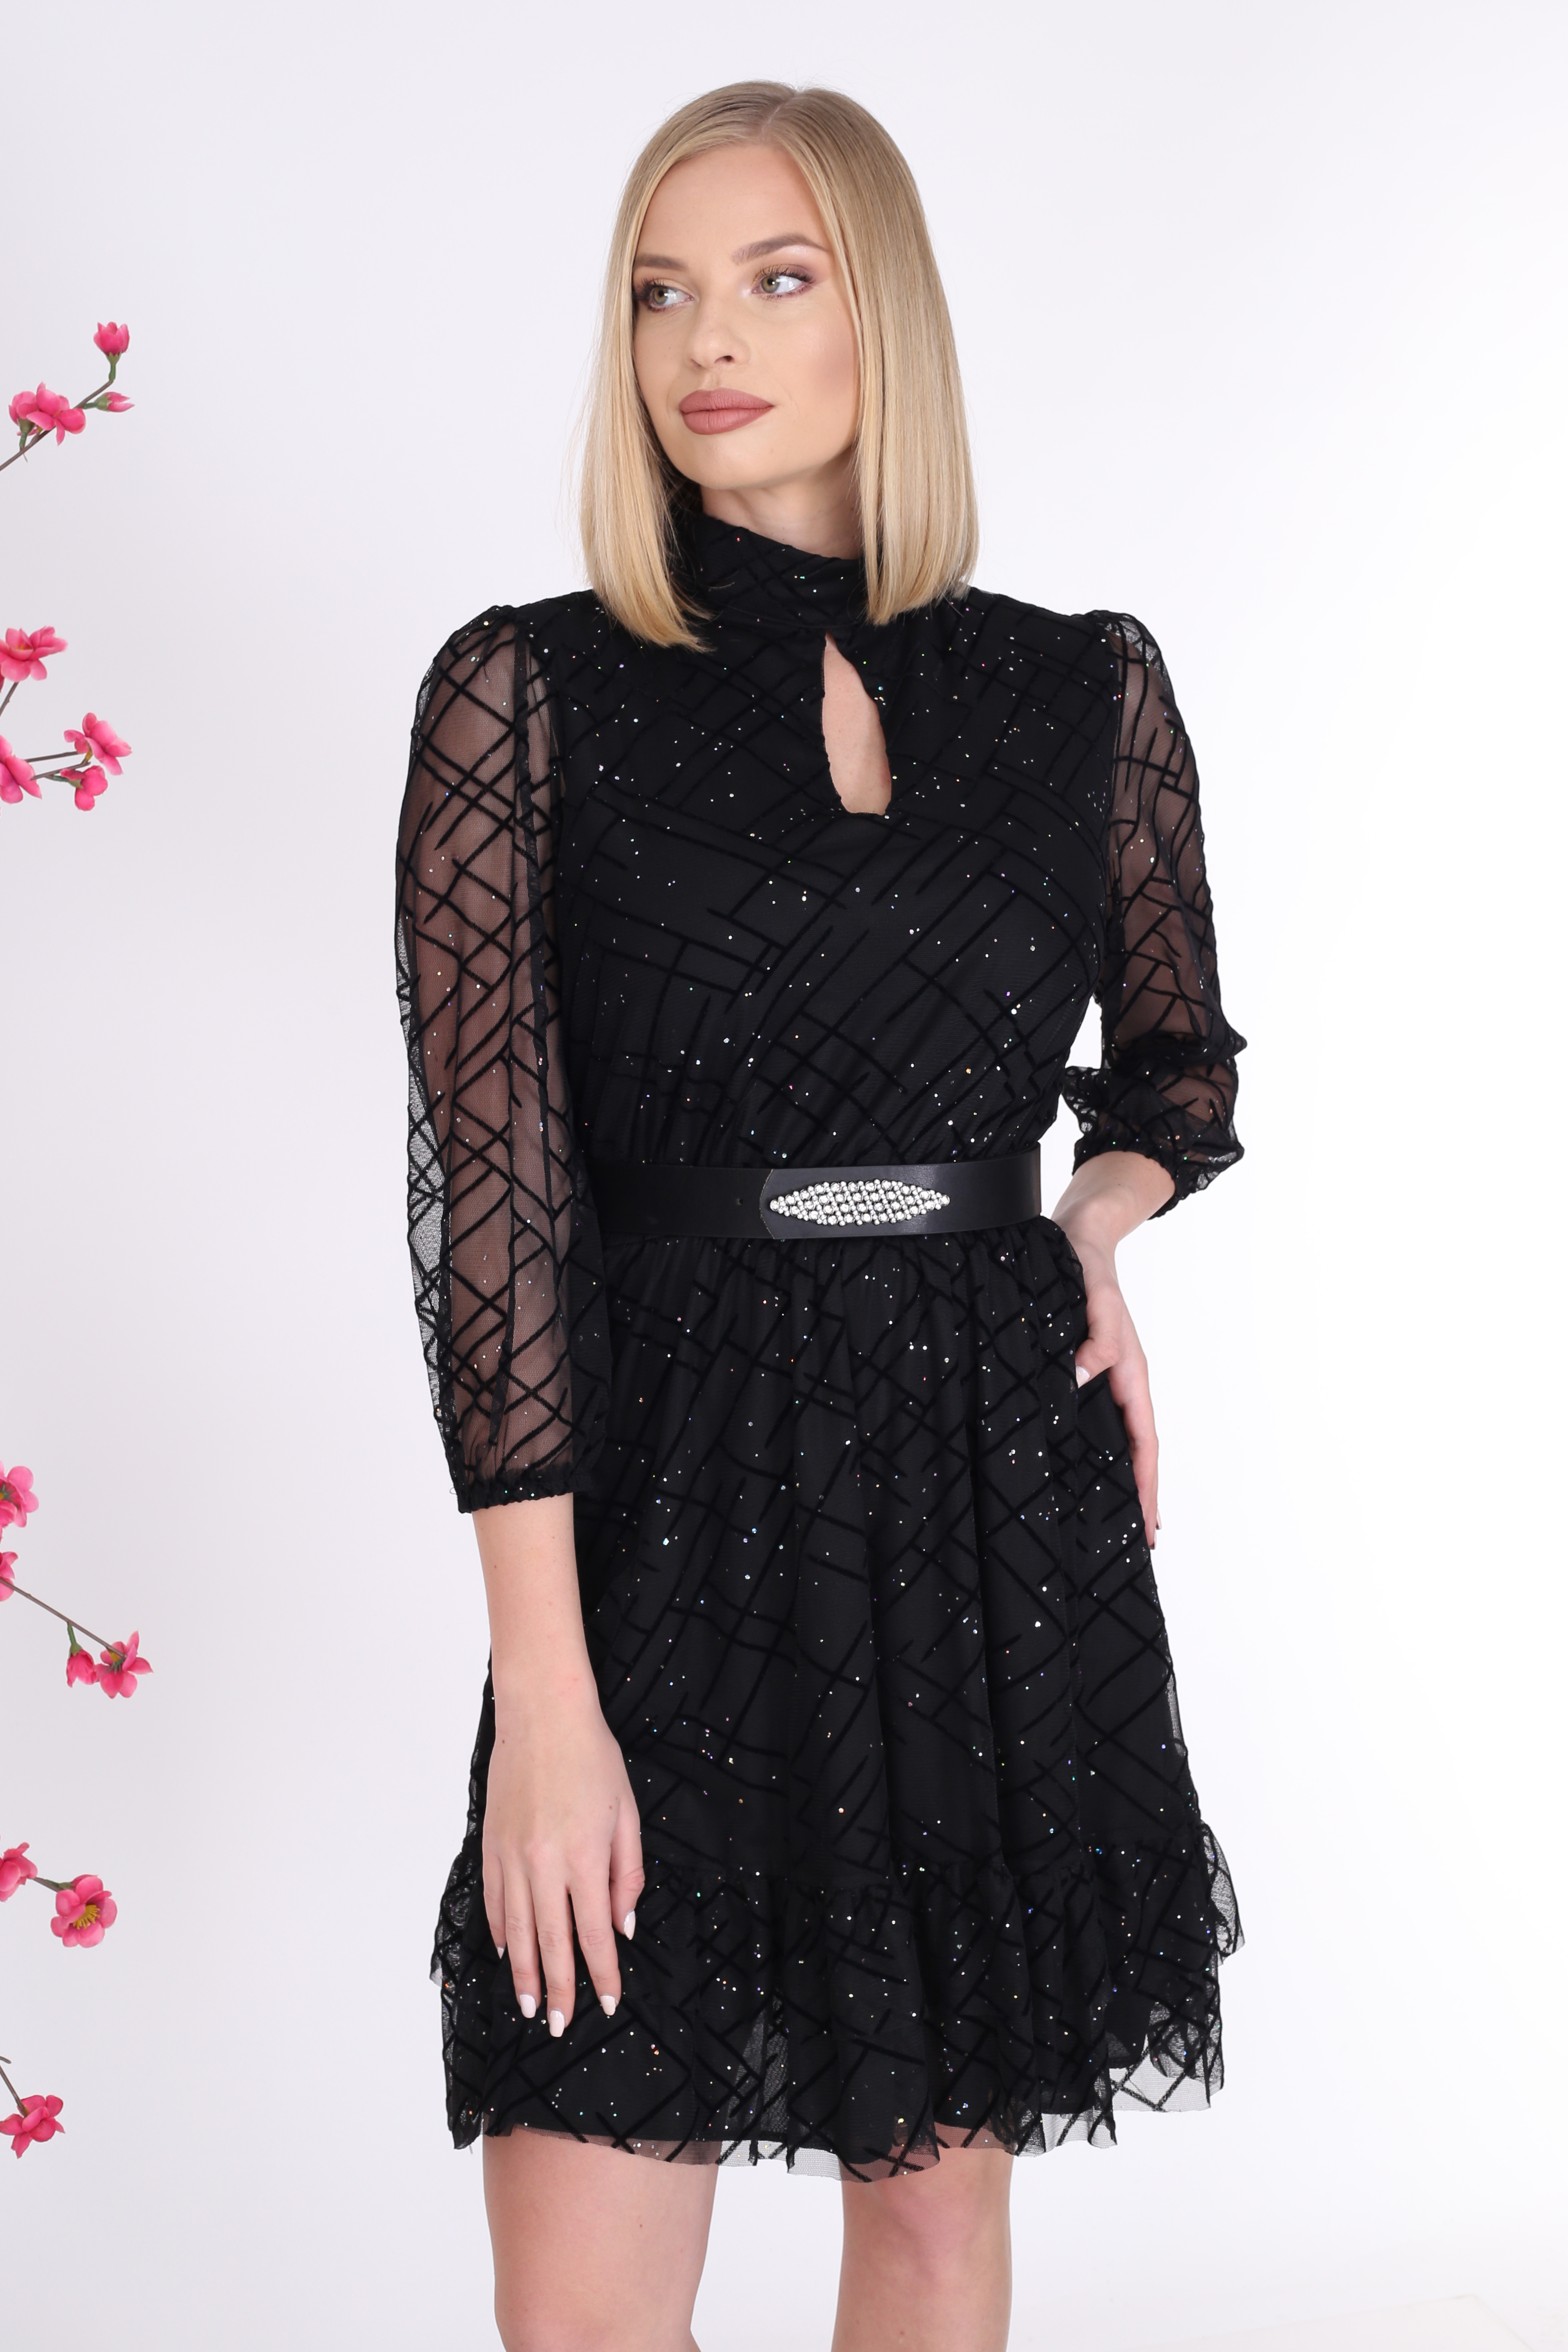 Silvery Black Color Tulle Dress